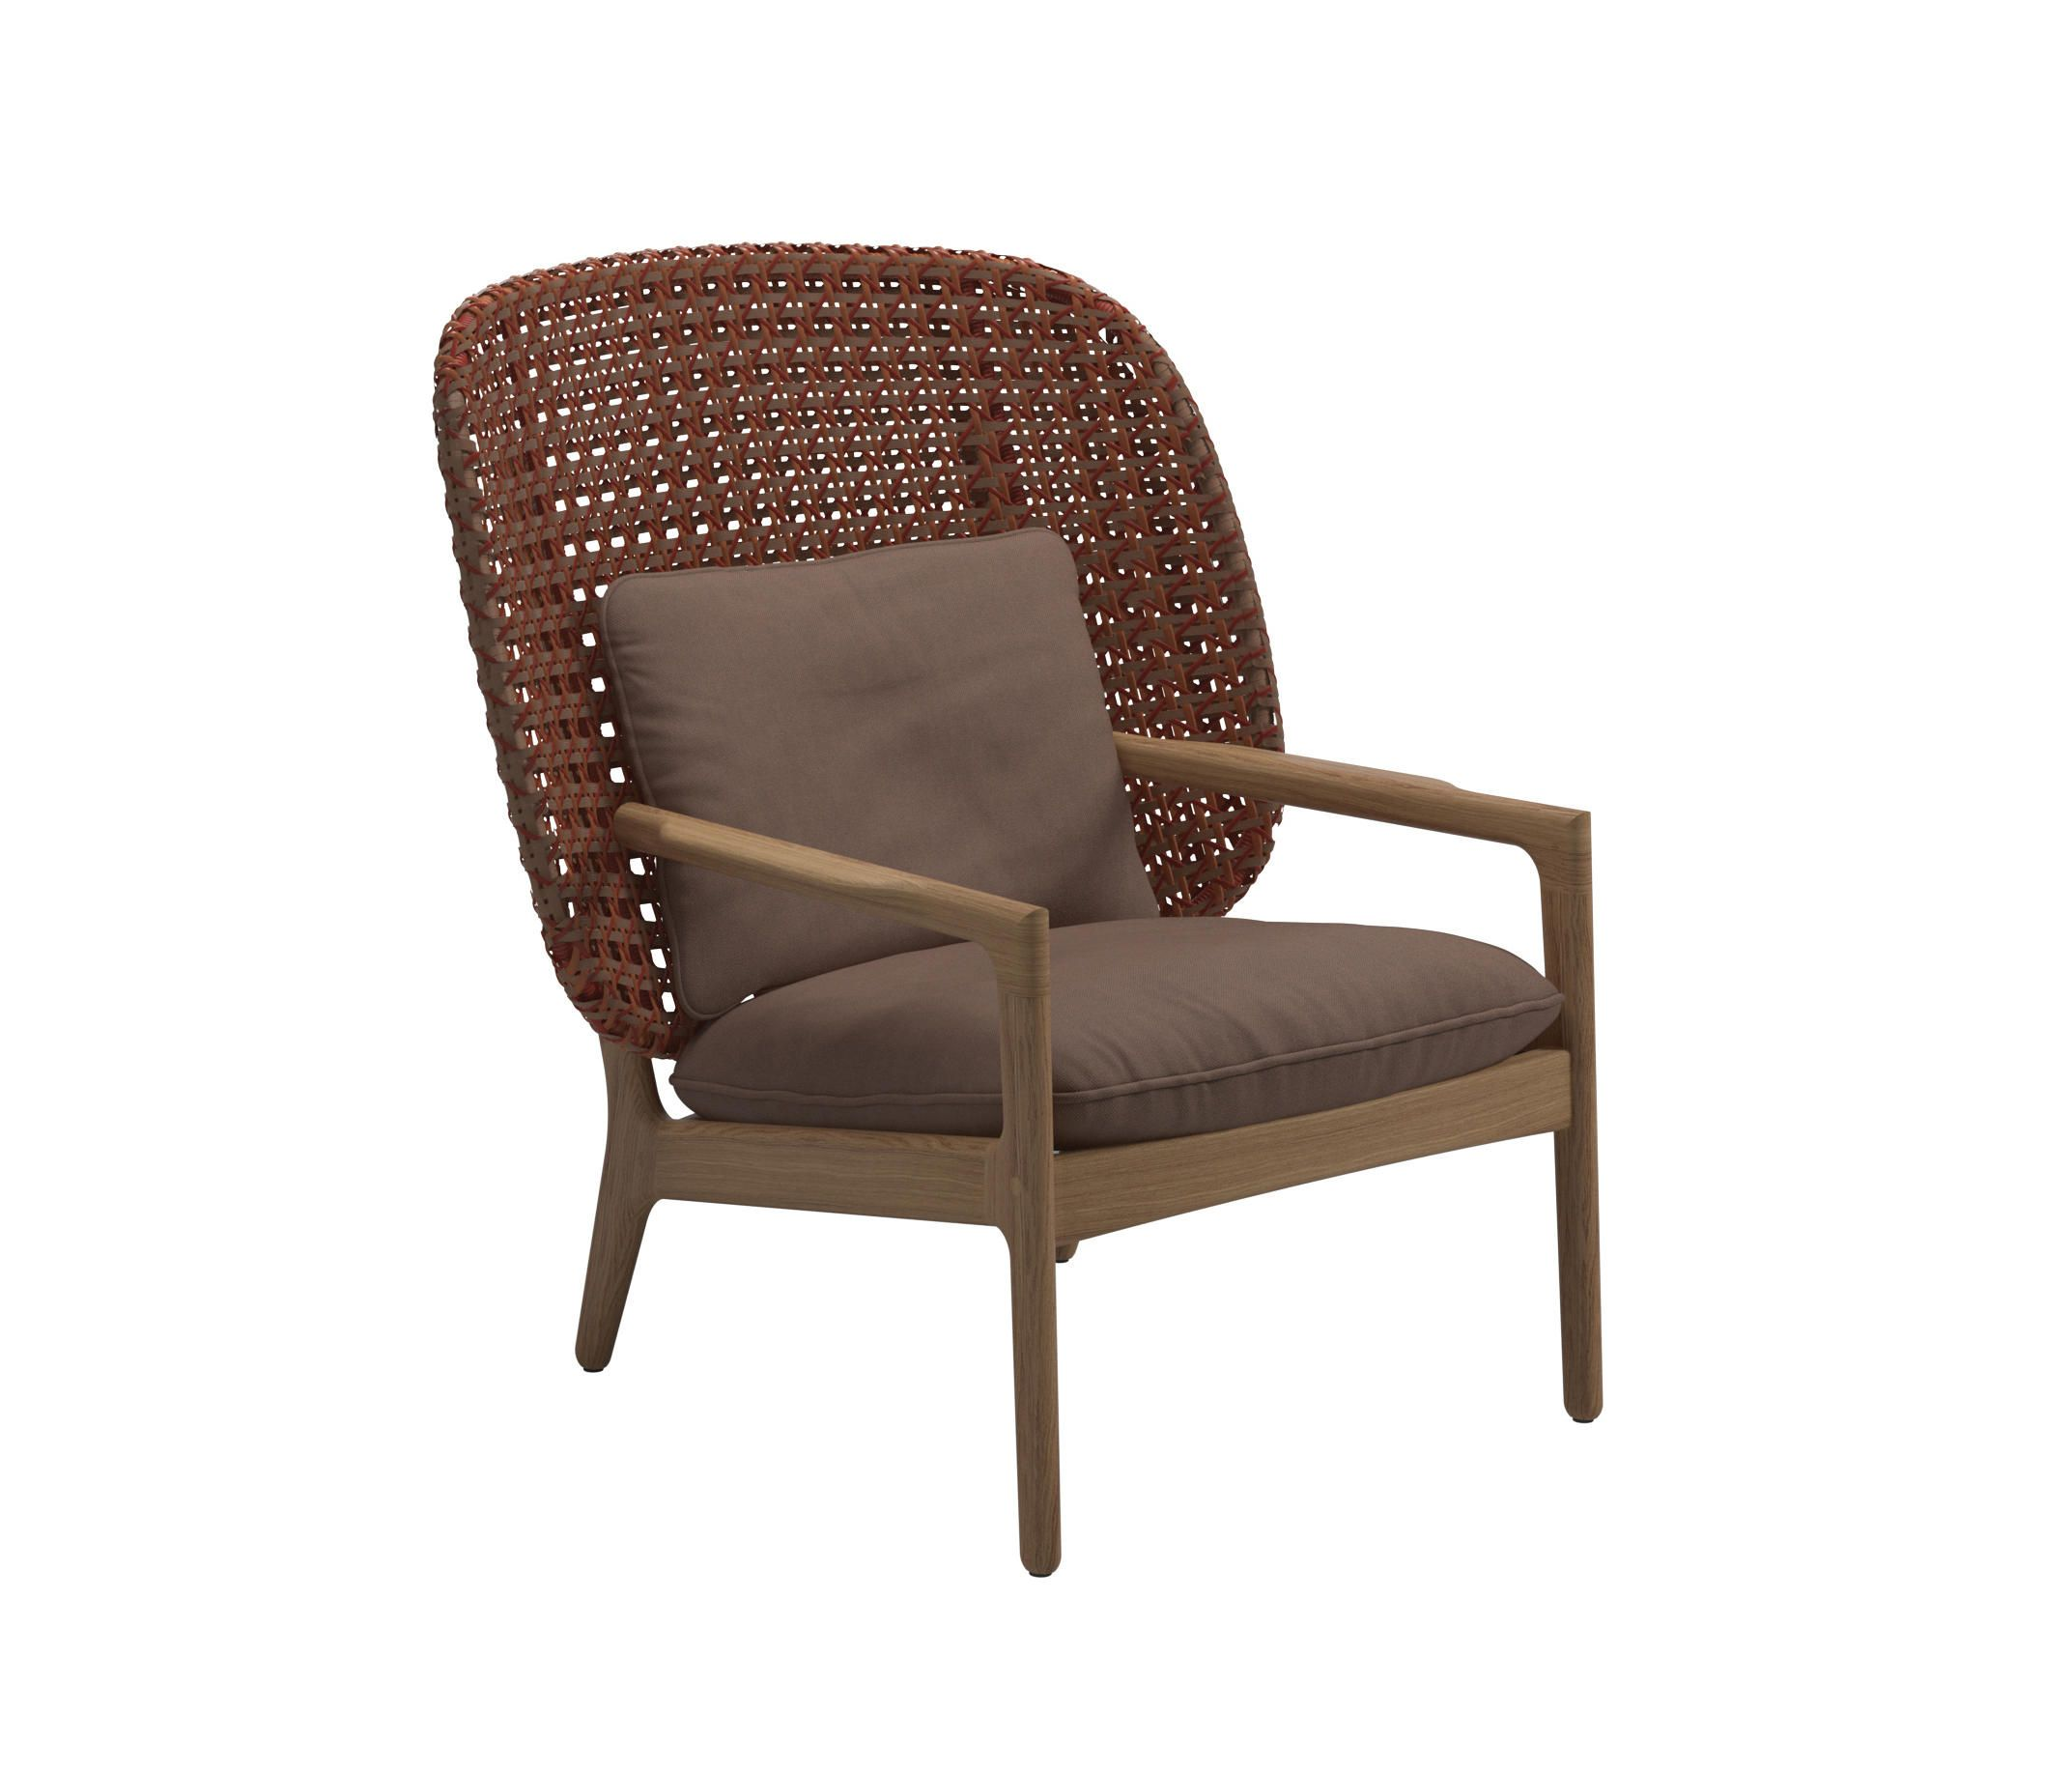 Kay High Back Lounge Chair Copper By Gloster Furniture Gmbh Architonic Gloster Furniture Furniture Chair